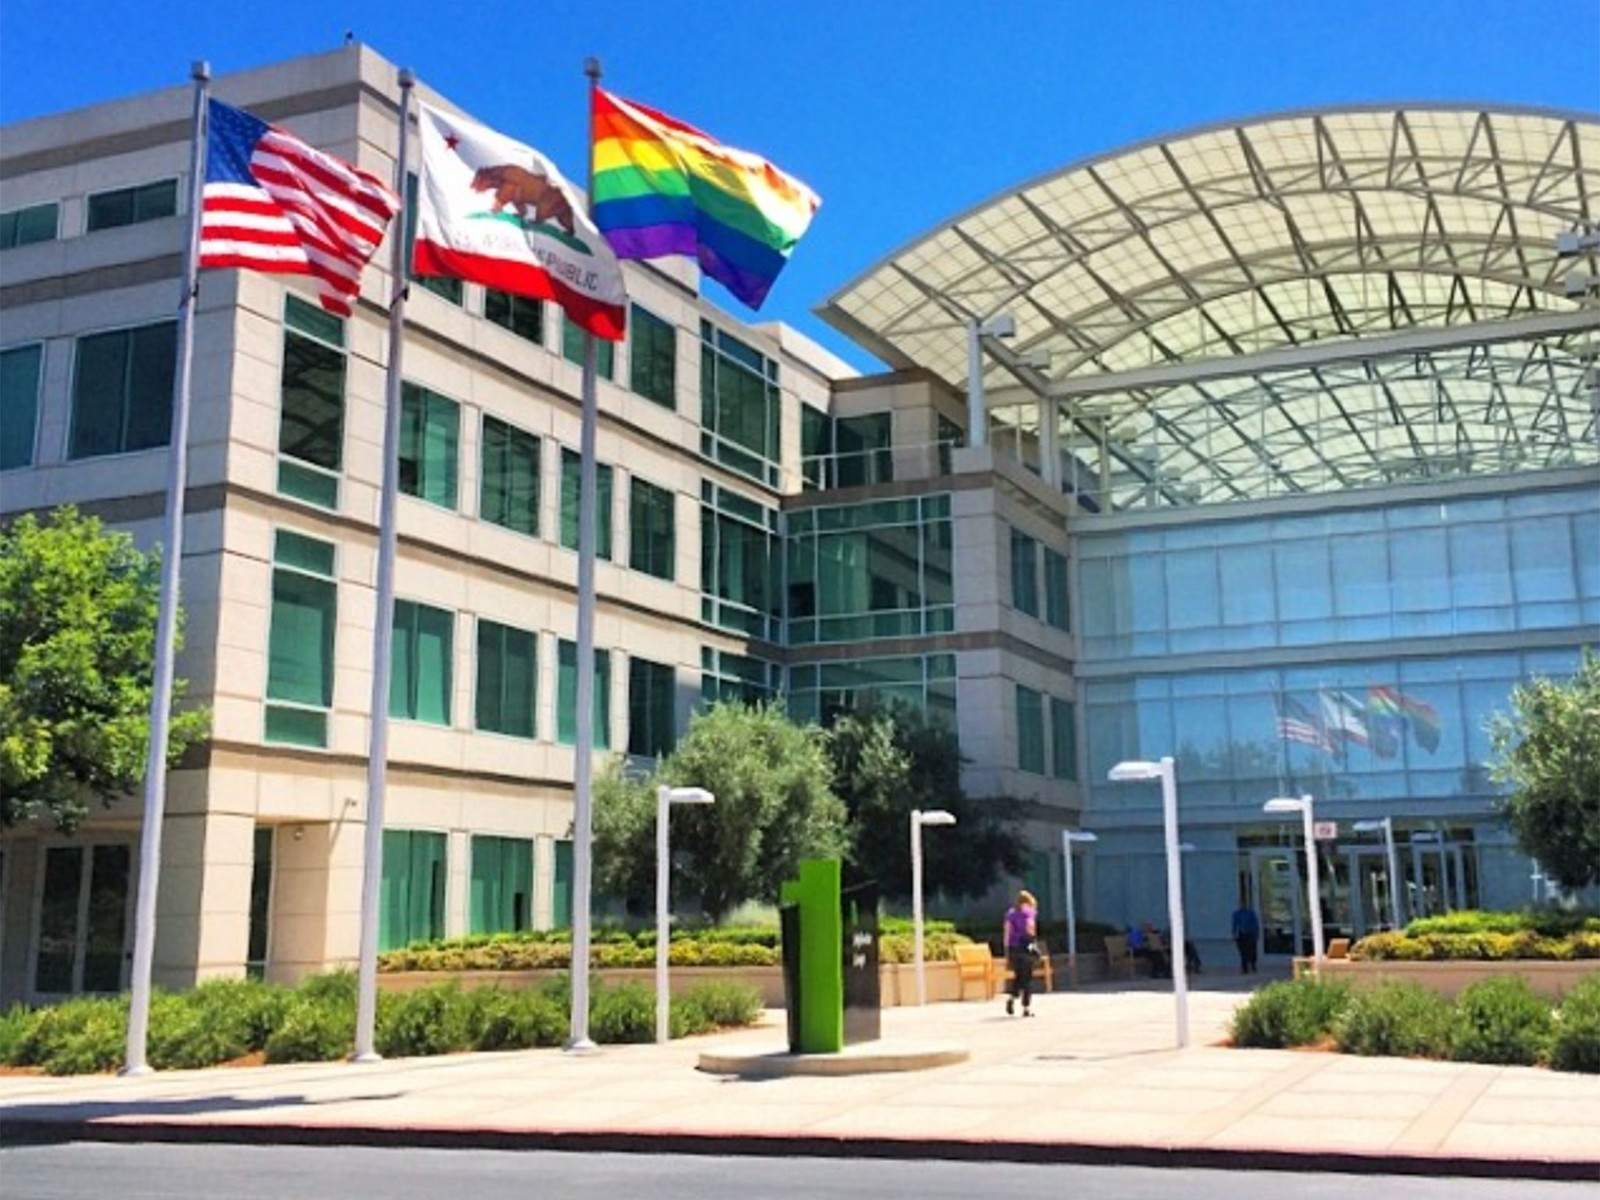 Tim Cook pushes L.G.B.T. rights for a more equal Alabama